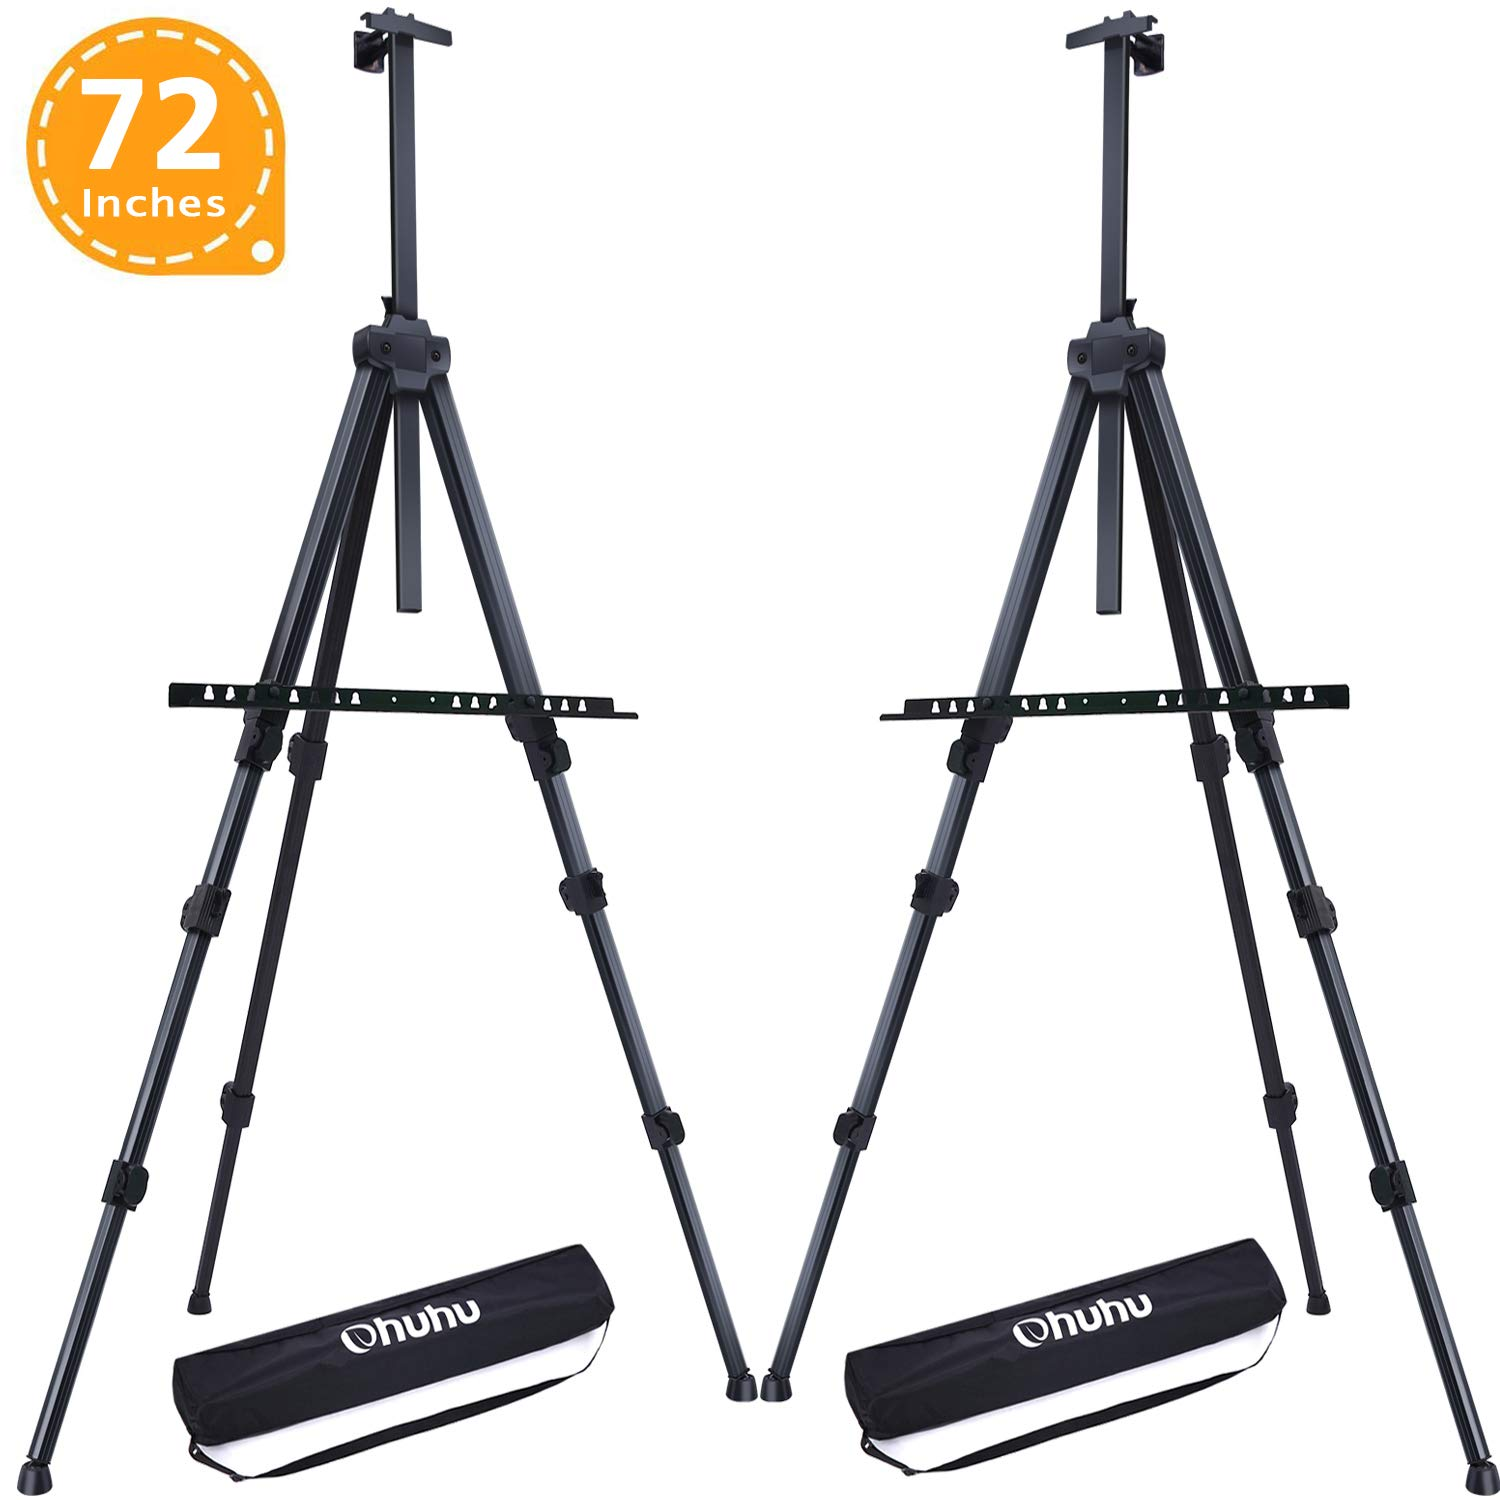 Display Easel Stand, Ohuhu 72'' Aluminum Metal Tripod Field Easel with Bag for Table-Top/Floor, 2-Pack Black Art Easels W/Adjustable Height from 25-72'' for Poster, Paint Back to School by Ohuhu